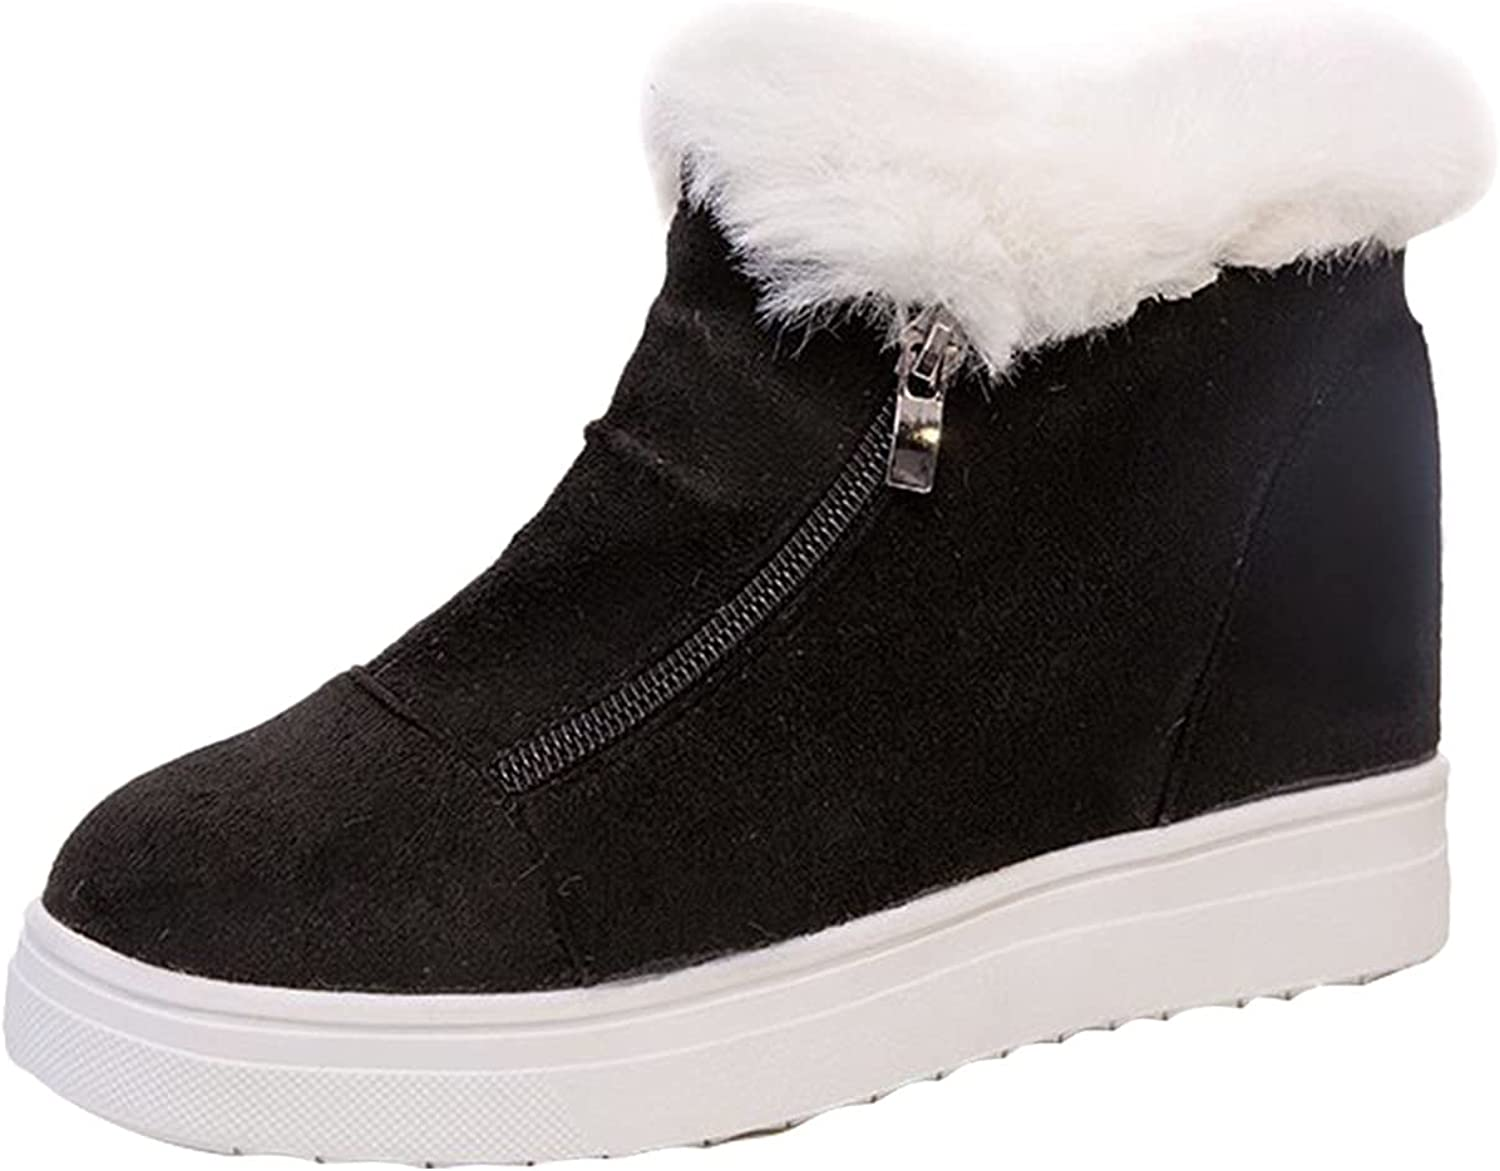 Heumgtnvx Womens Teenage In stock Cotton Snow Shoes Heels Boots Mid High quality